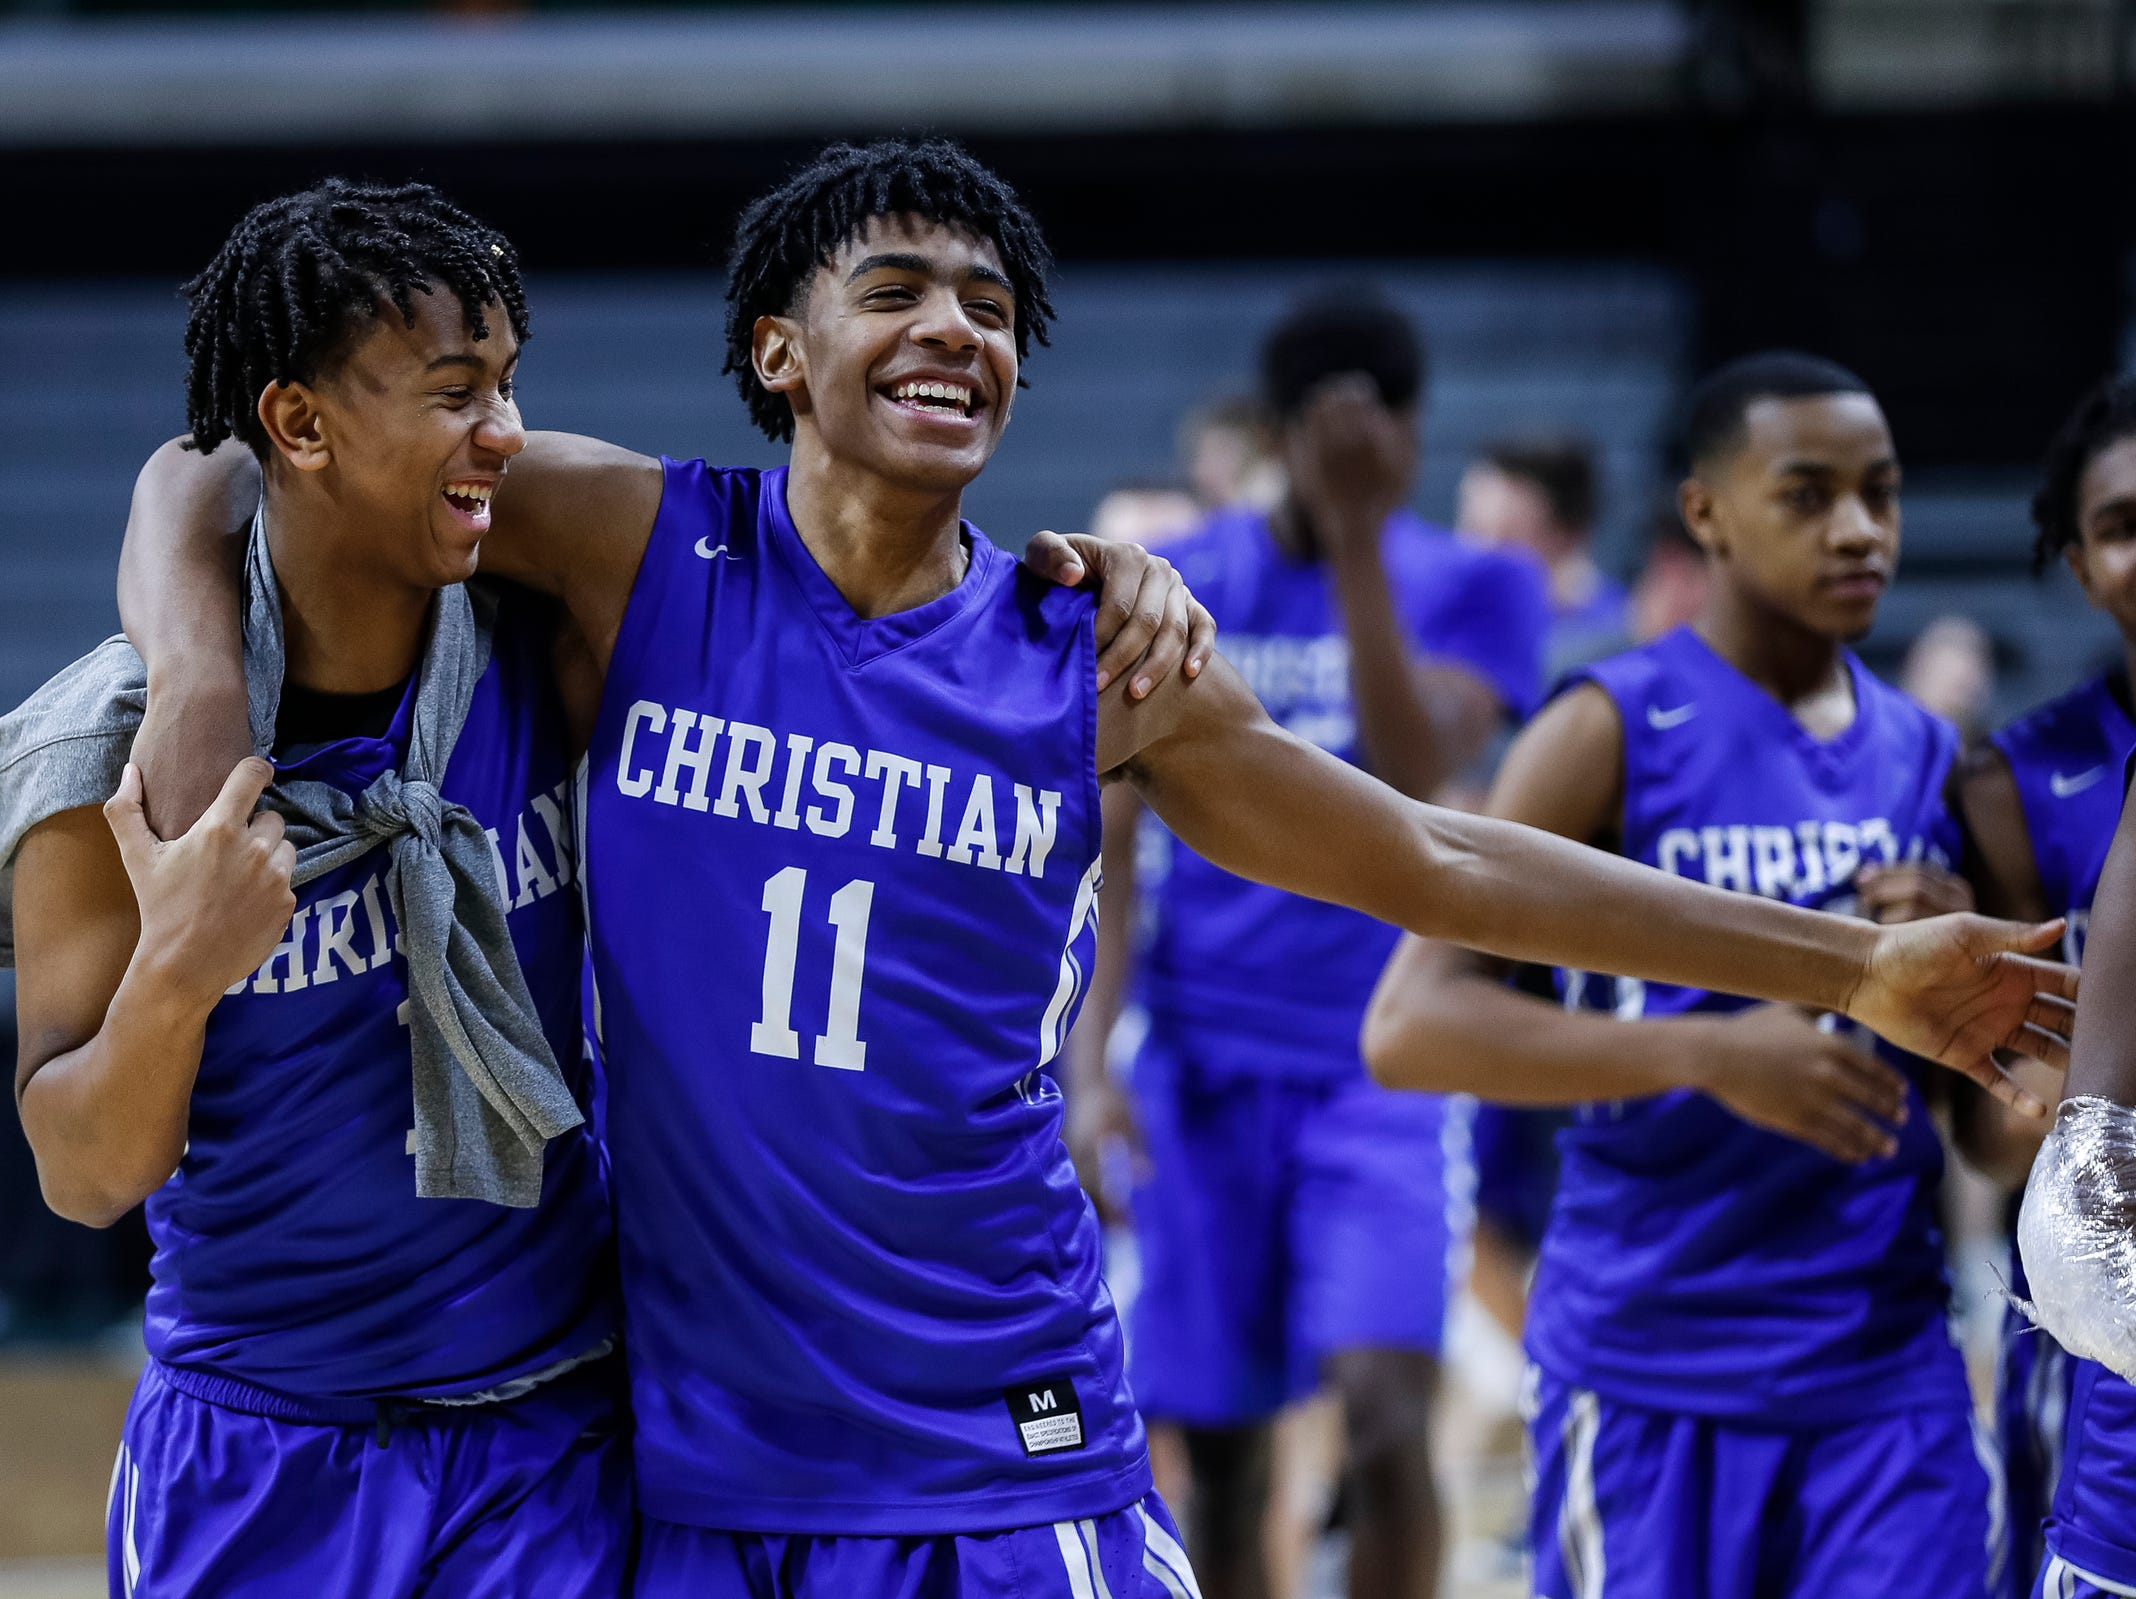 Southfield Christian's Tarron Carter (1) and Malcolm King (11) celebrates the Eagles' 55-28 victory over Dollar Bay at the MHSAA Division 4 semifinal at the Breslin Center in East Lansing, Thursday, March 14, 2019.